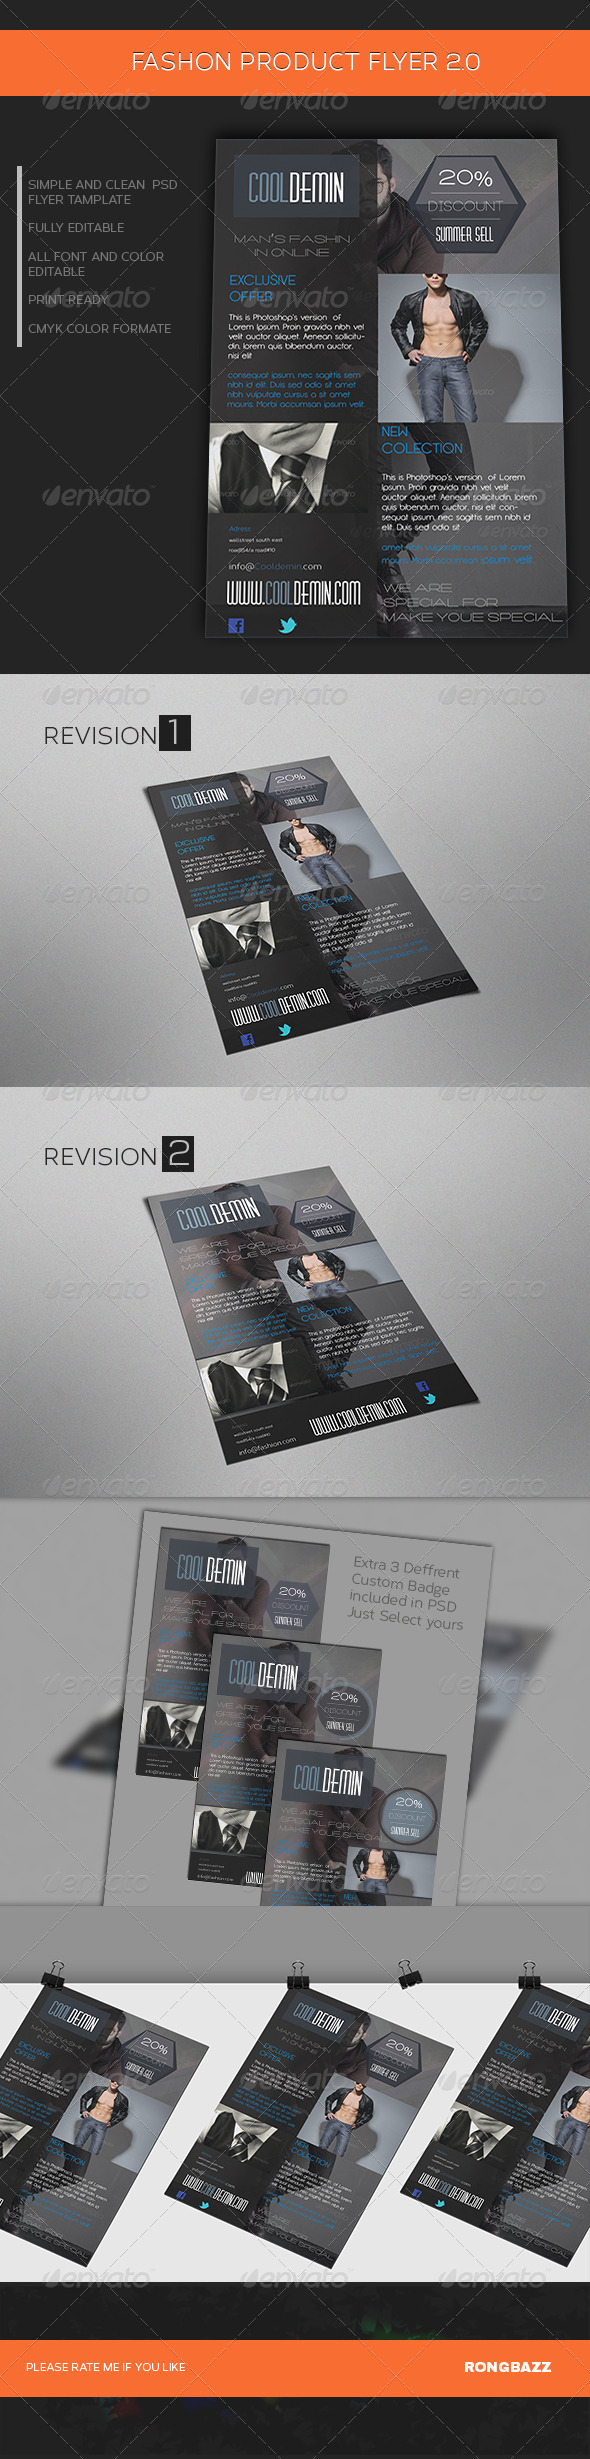 Man's Fashion Product Flyer Template 2.0 - Commerce Flyers